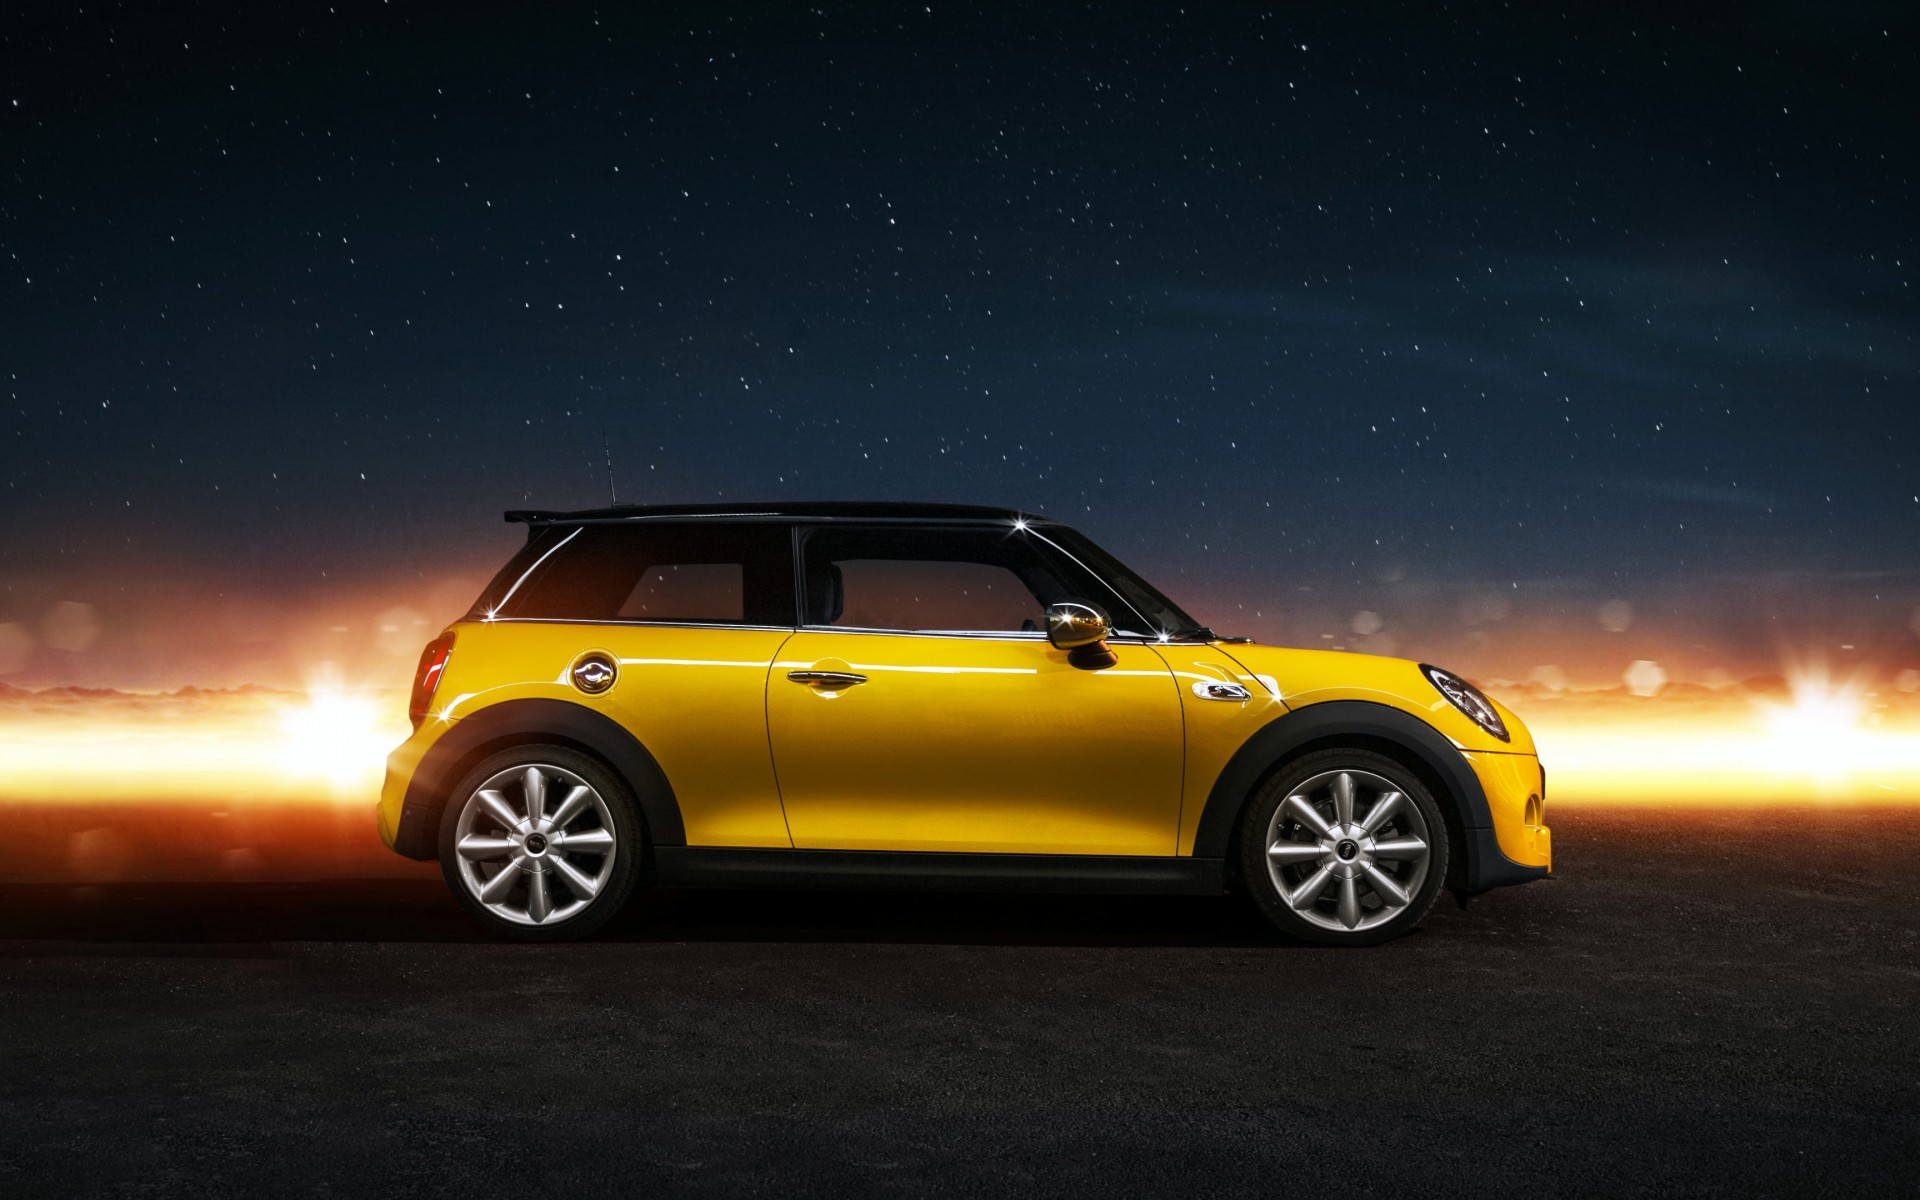 Yellow Mini Cooper S Wallpaper for Desktop 1920x1200